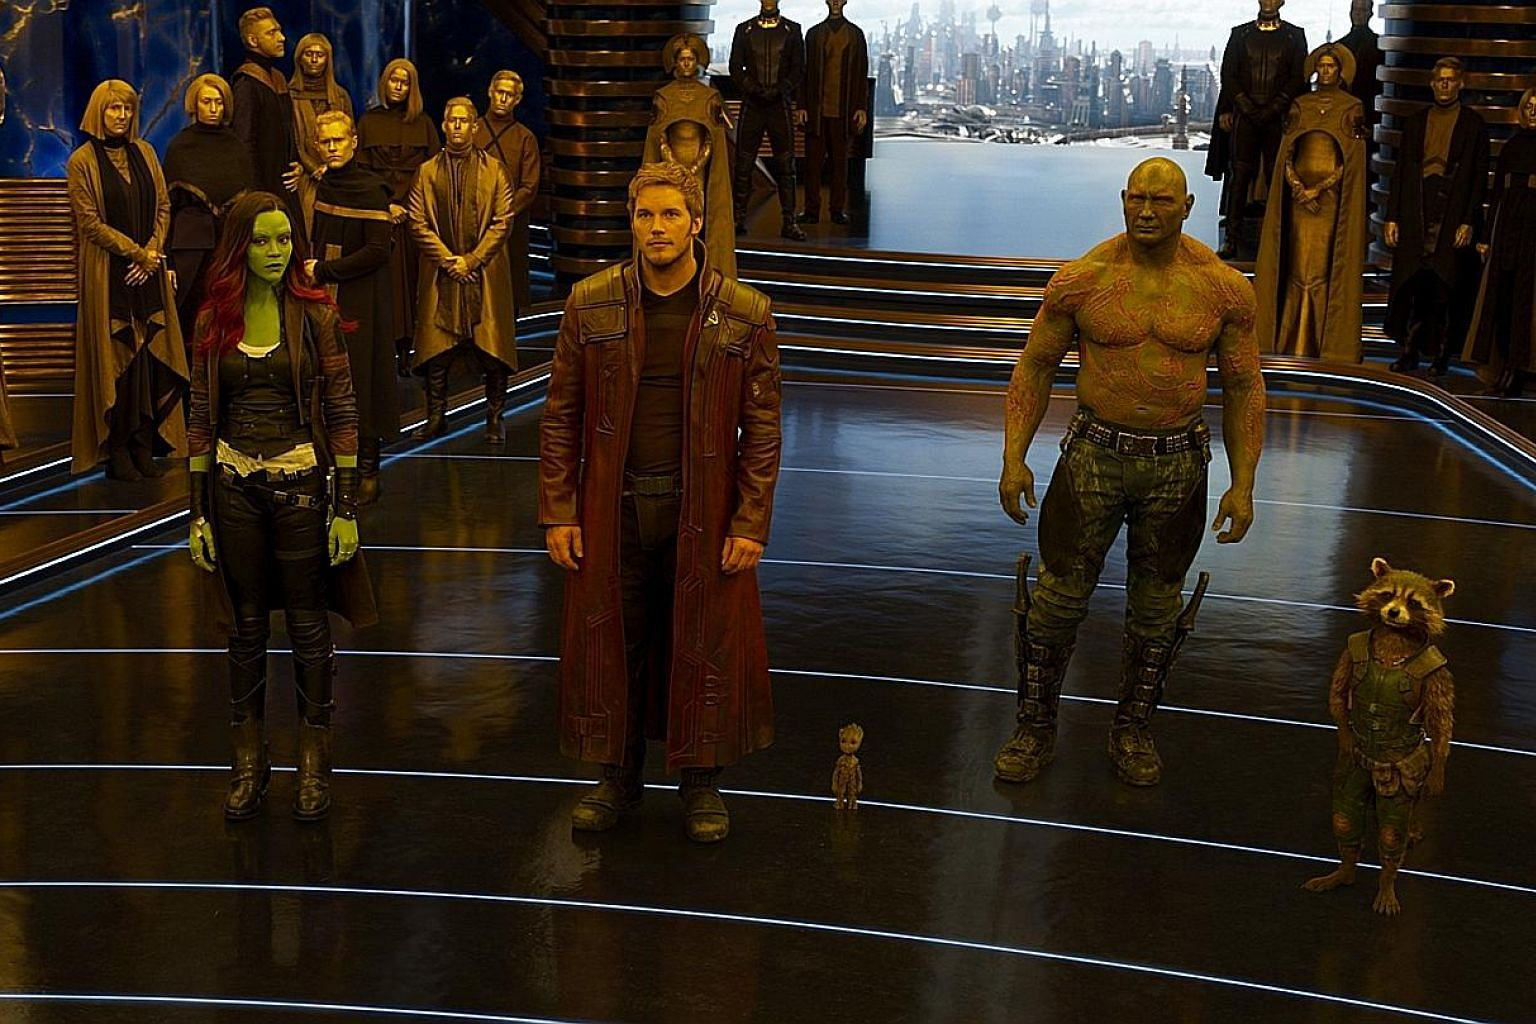 (From left) Warrior Gamora (Zoe Saldana), half-human, half-alien Quill (Chris Pratt), sentient plant Groot (voiced by Vin Diesel), convict Drax (Dave Bautista) and Rocket (voiced by Bradley Cooper) in Guardians Of The Galaxy Vol. 2.